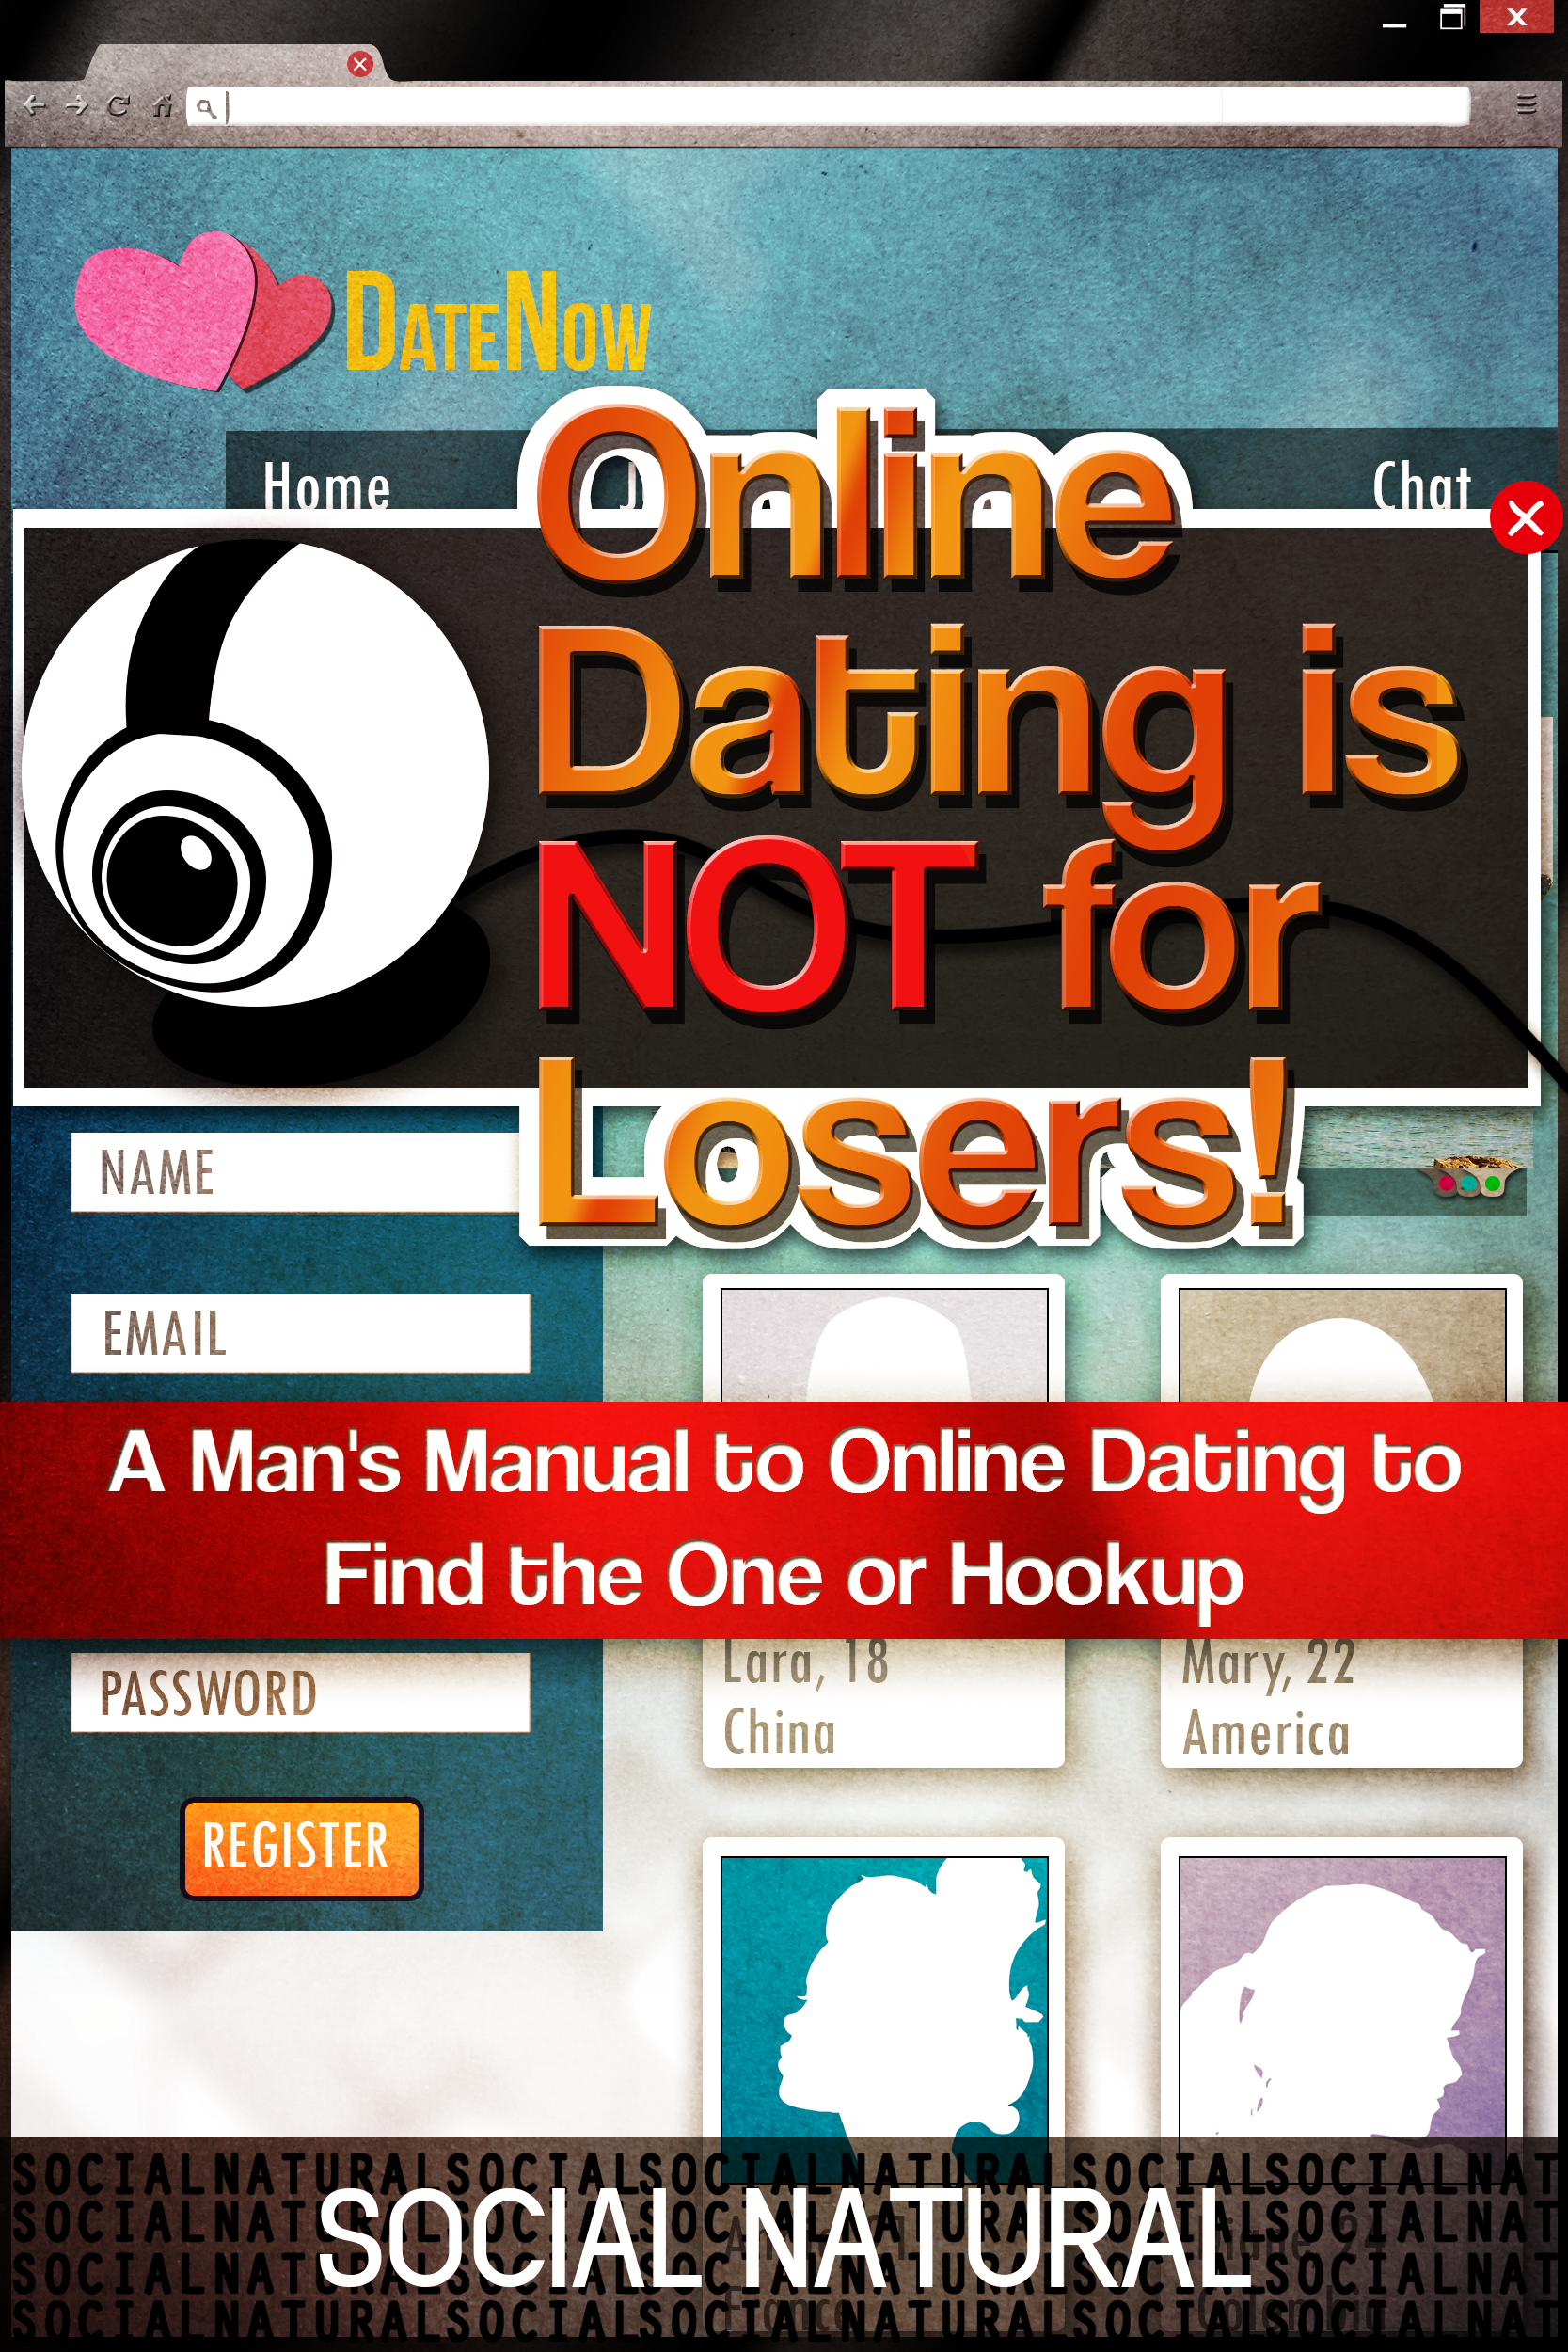 What to do when online hookup is not working